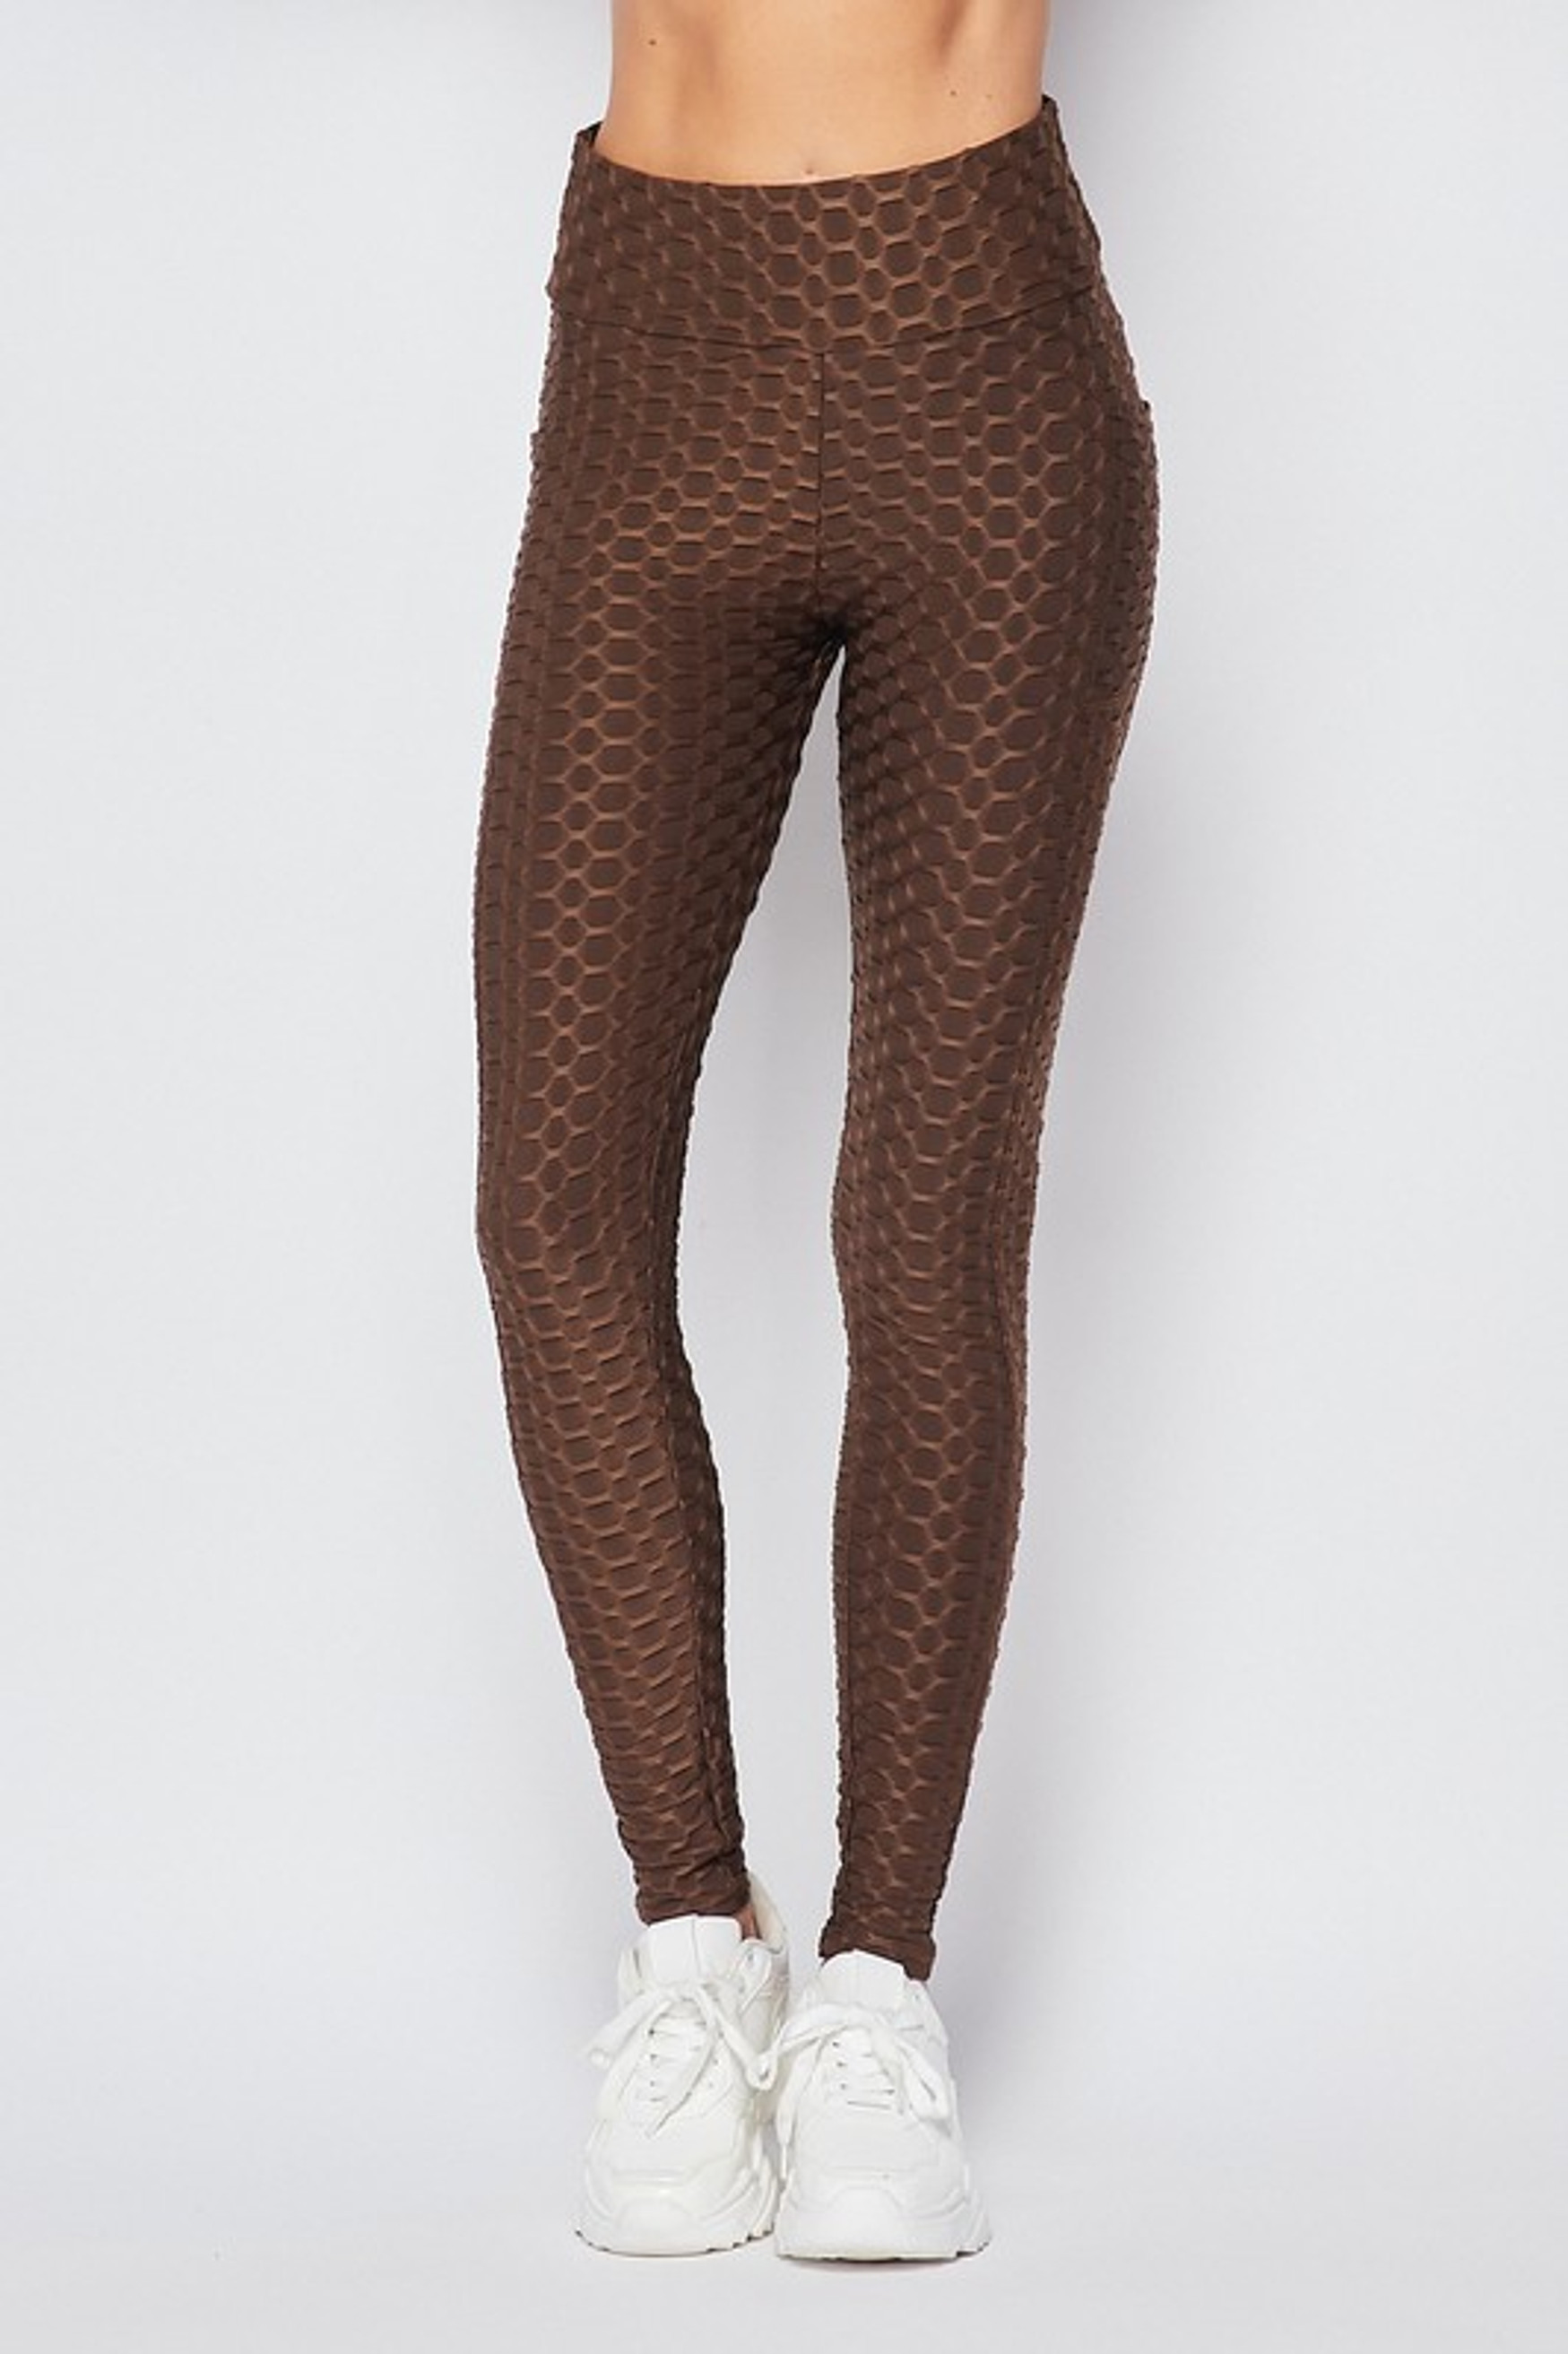 Front side image of Brown Scrunch Butt Popcorn Textured High Waisted Leggings with Pockets - Zinati (W&J)